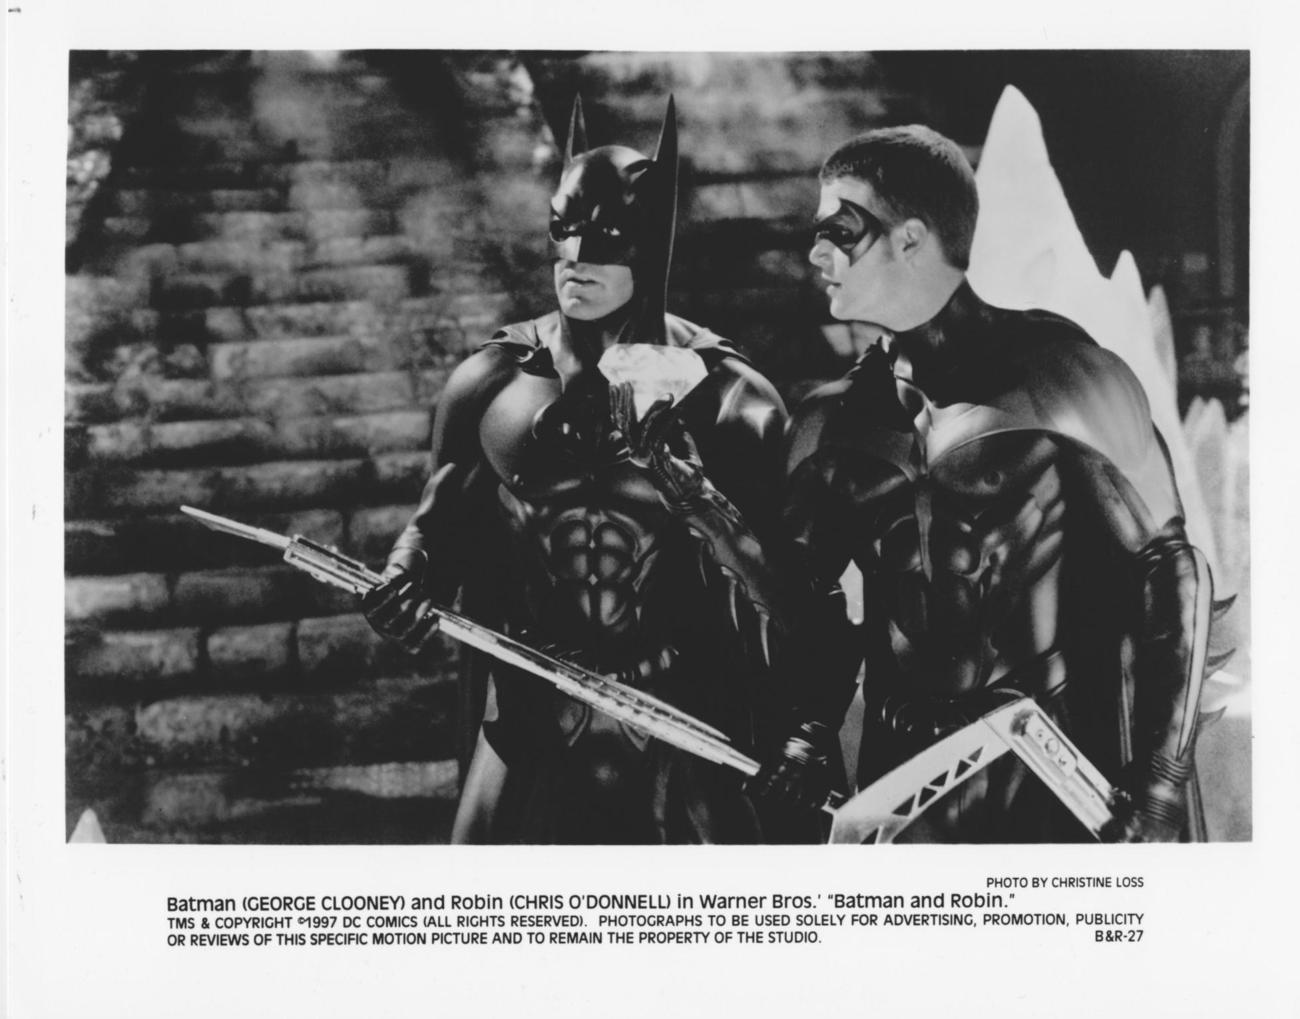 Batman & Robin George Clooney Chris O'Donnell 8x10 Photo